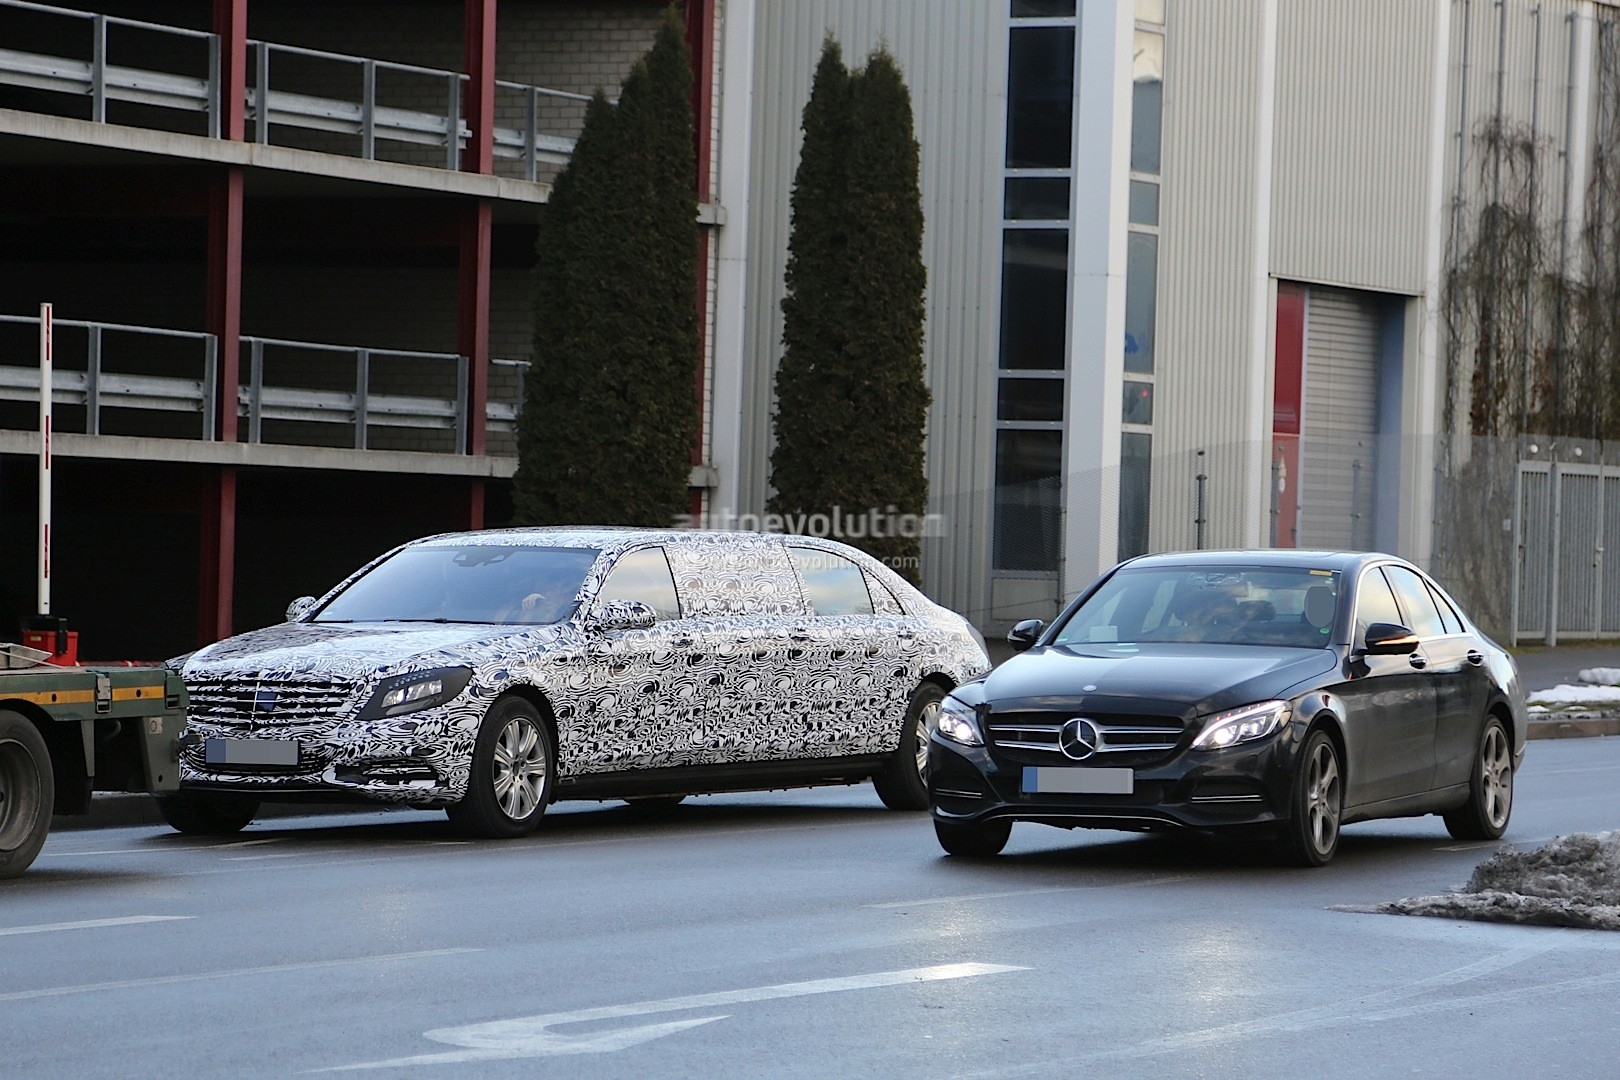 2016 mercedes benz s600 pullman interior spyshots show for Mercedes benz pullman